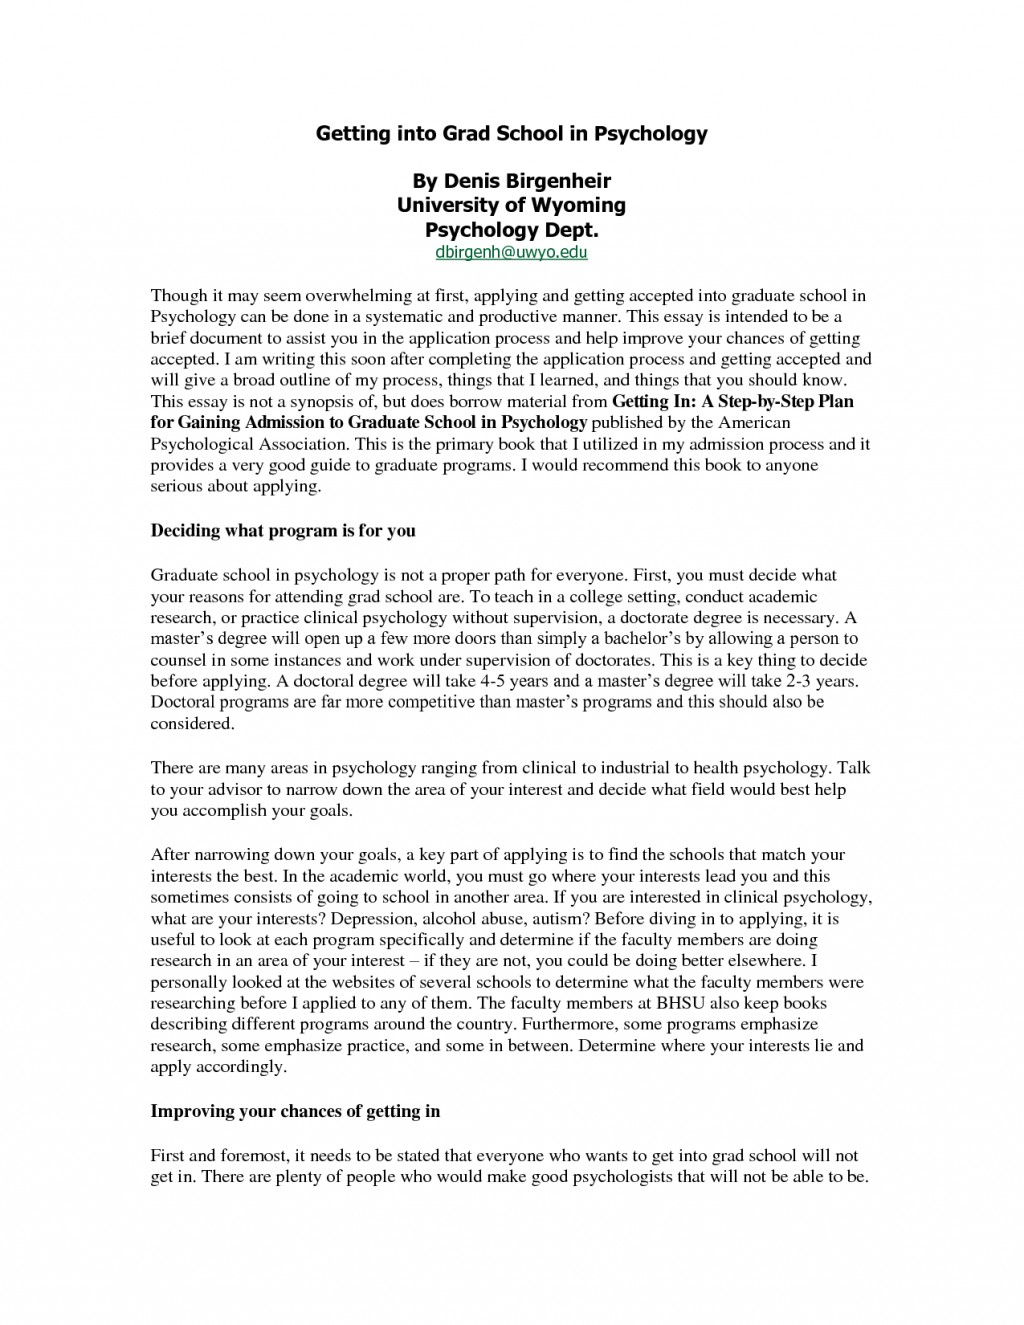 002 Graduation Essay Ydsmbeywi2 Excellent College Ideas Large